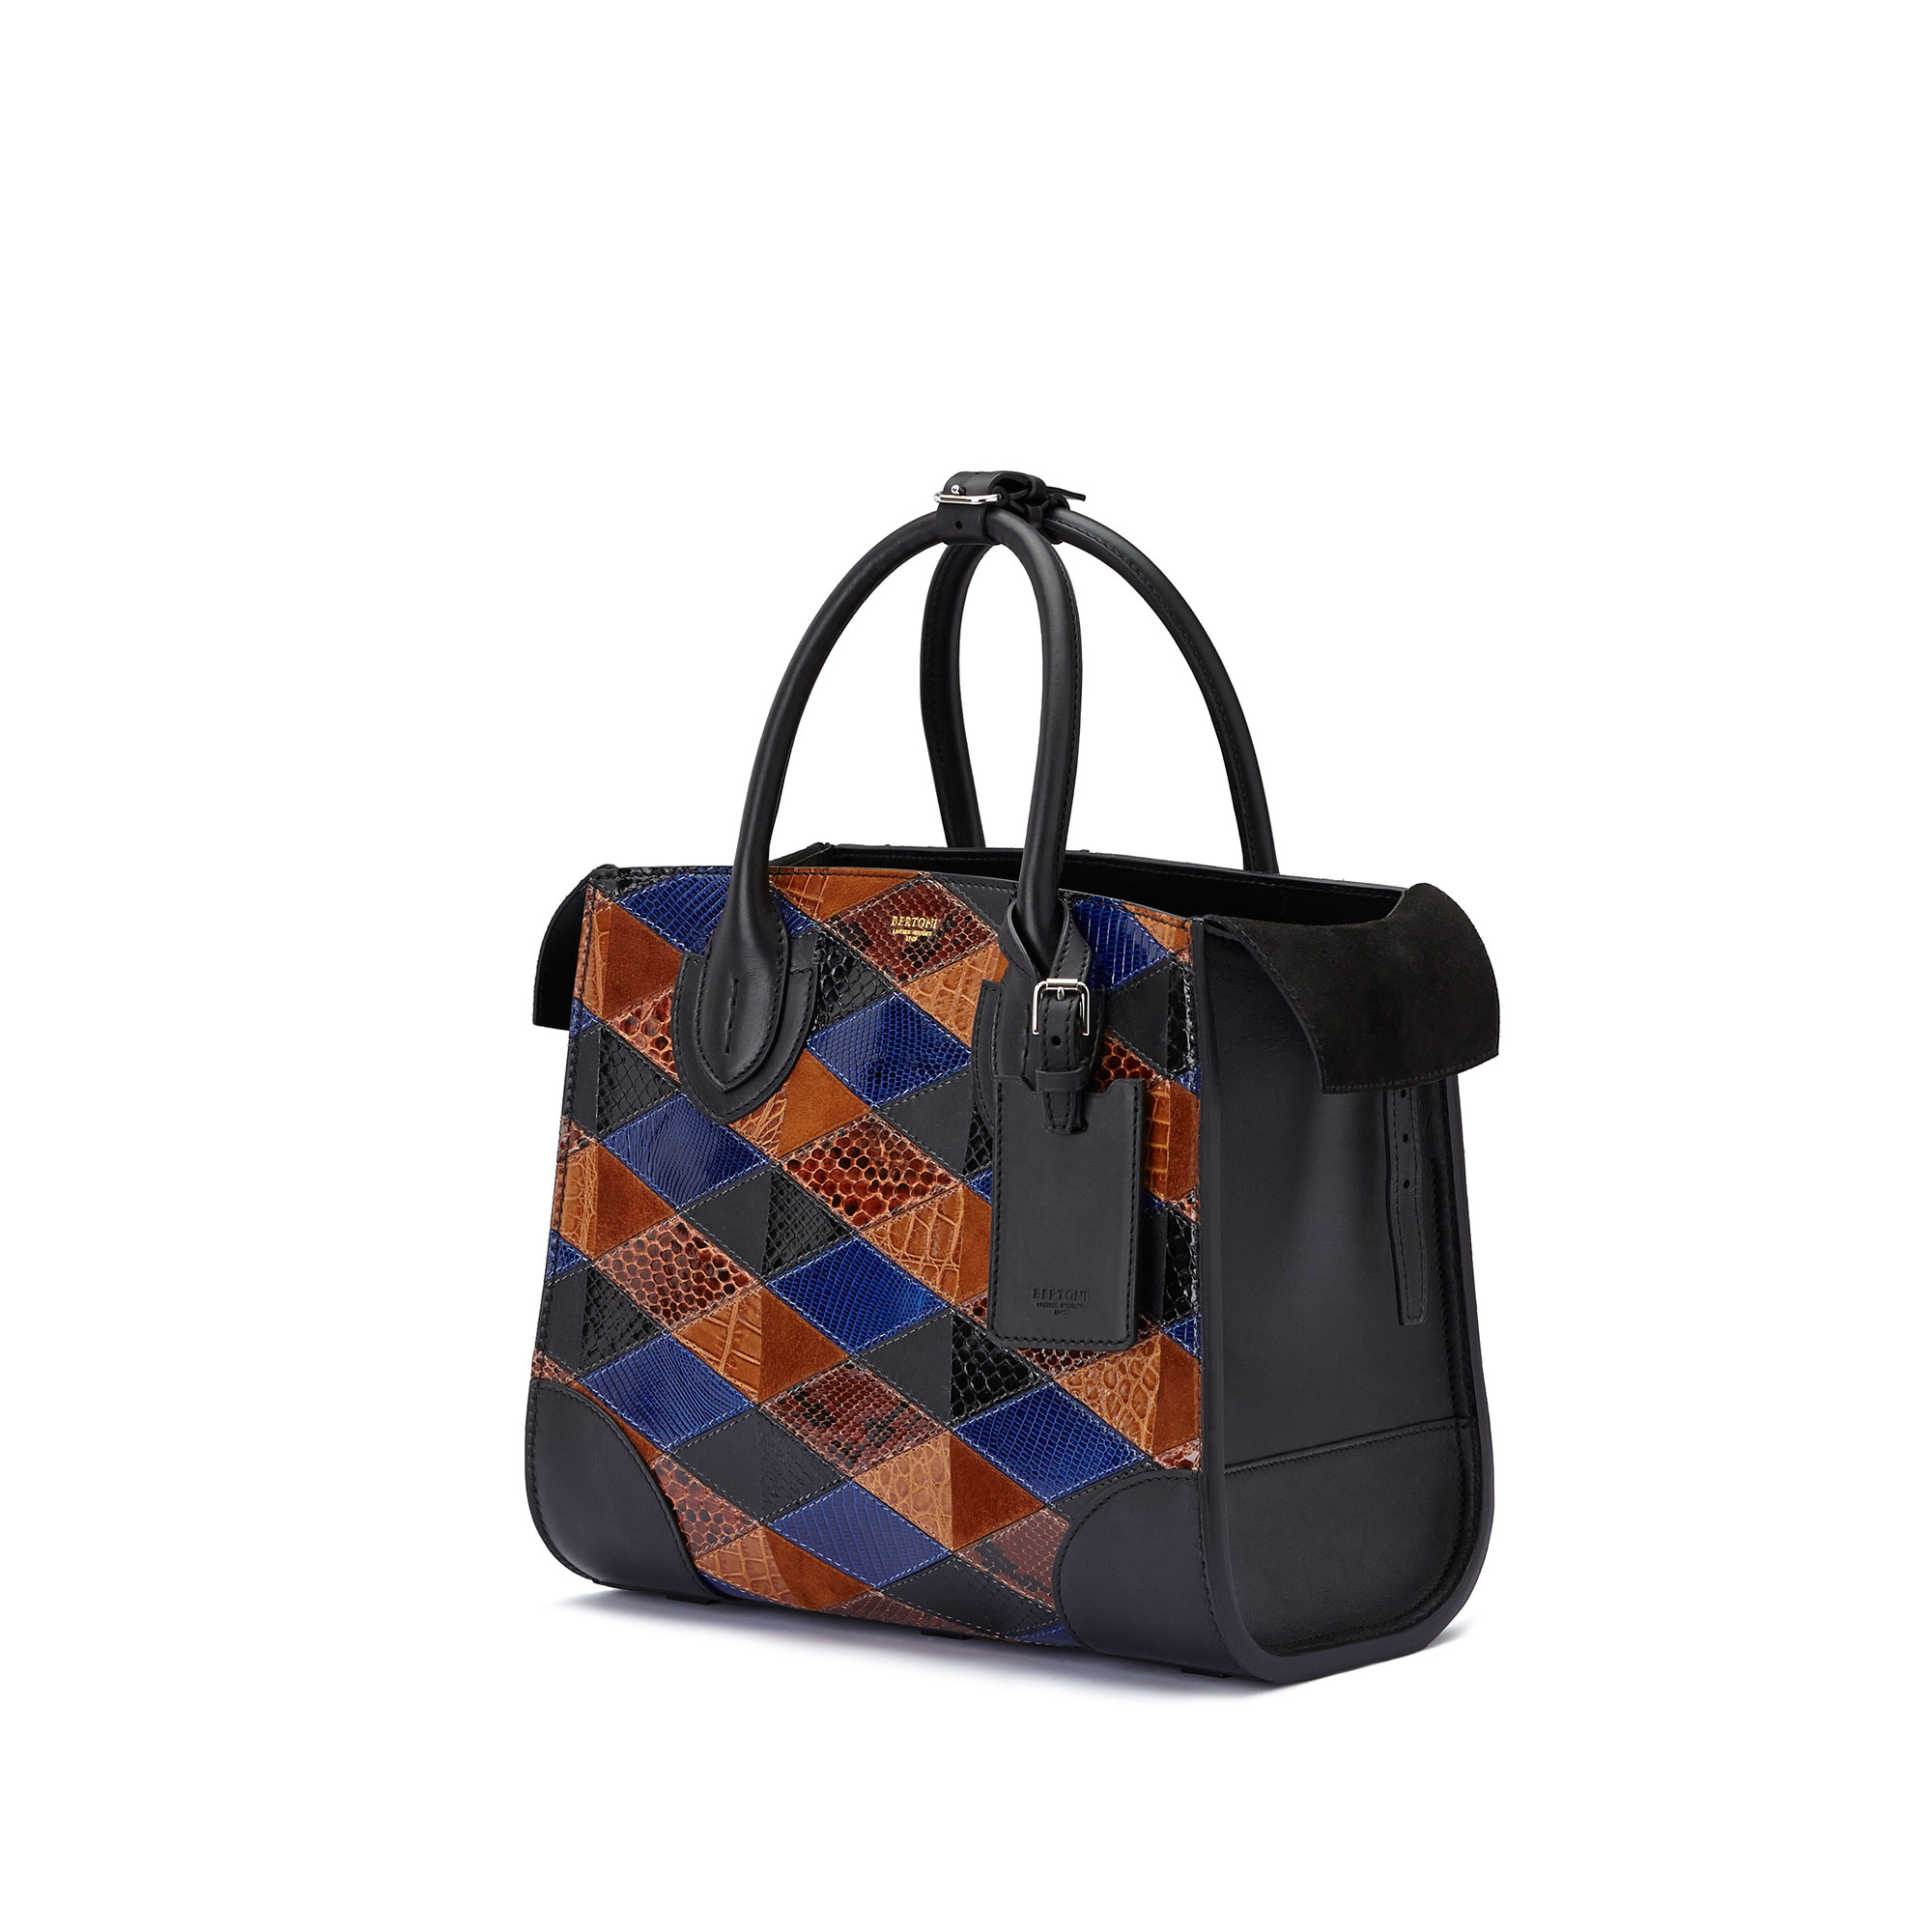 The navy, brown and black french calf, alligator, lizard and python Darcy medium bag by Bertoni 1949 04